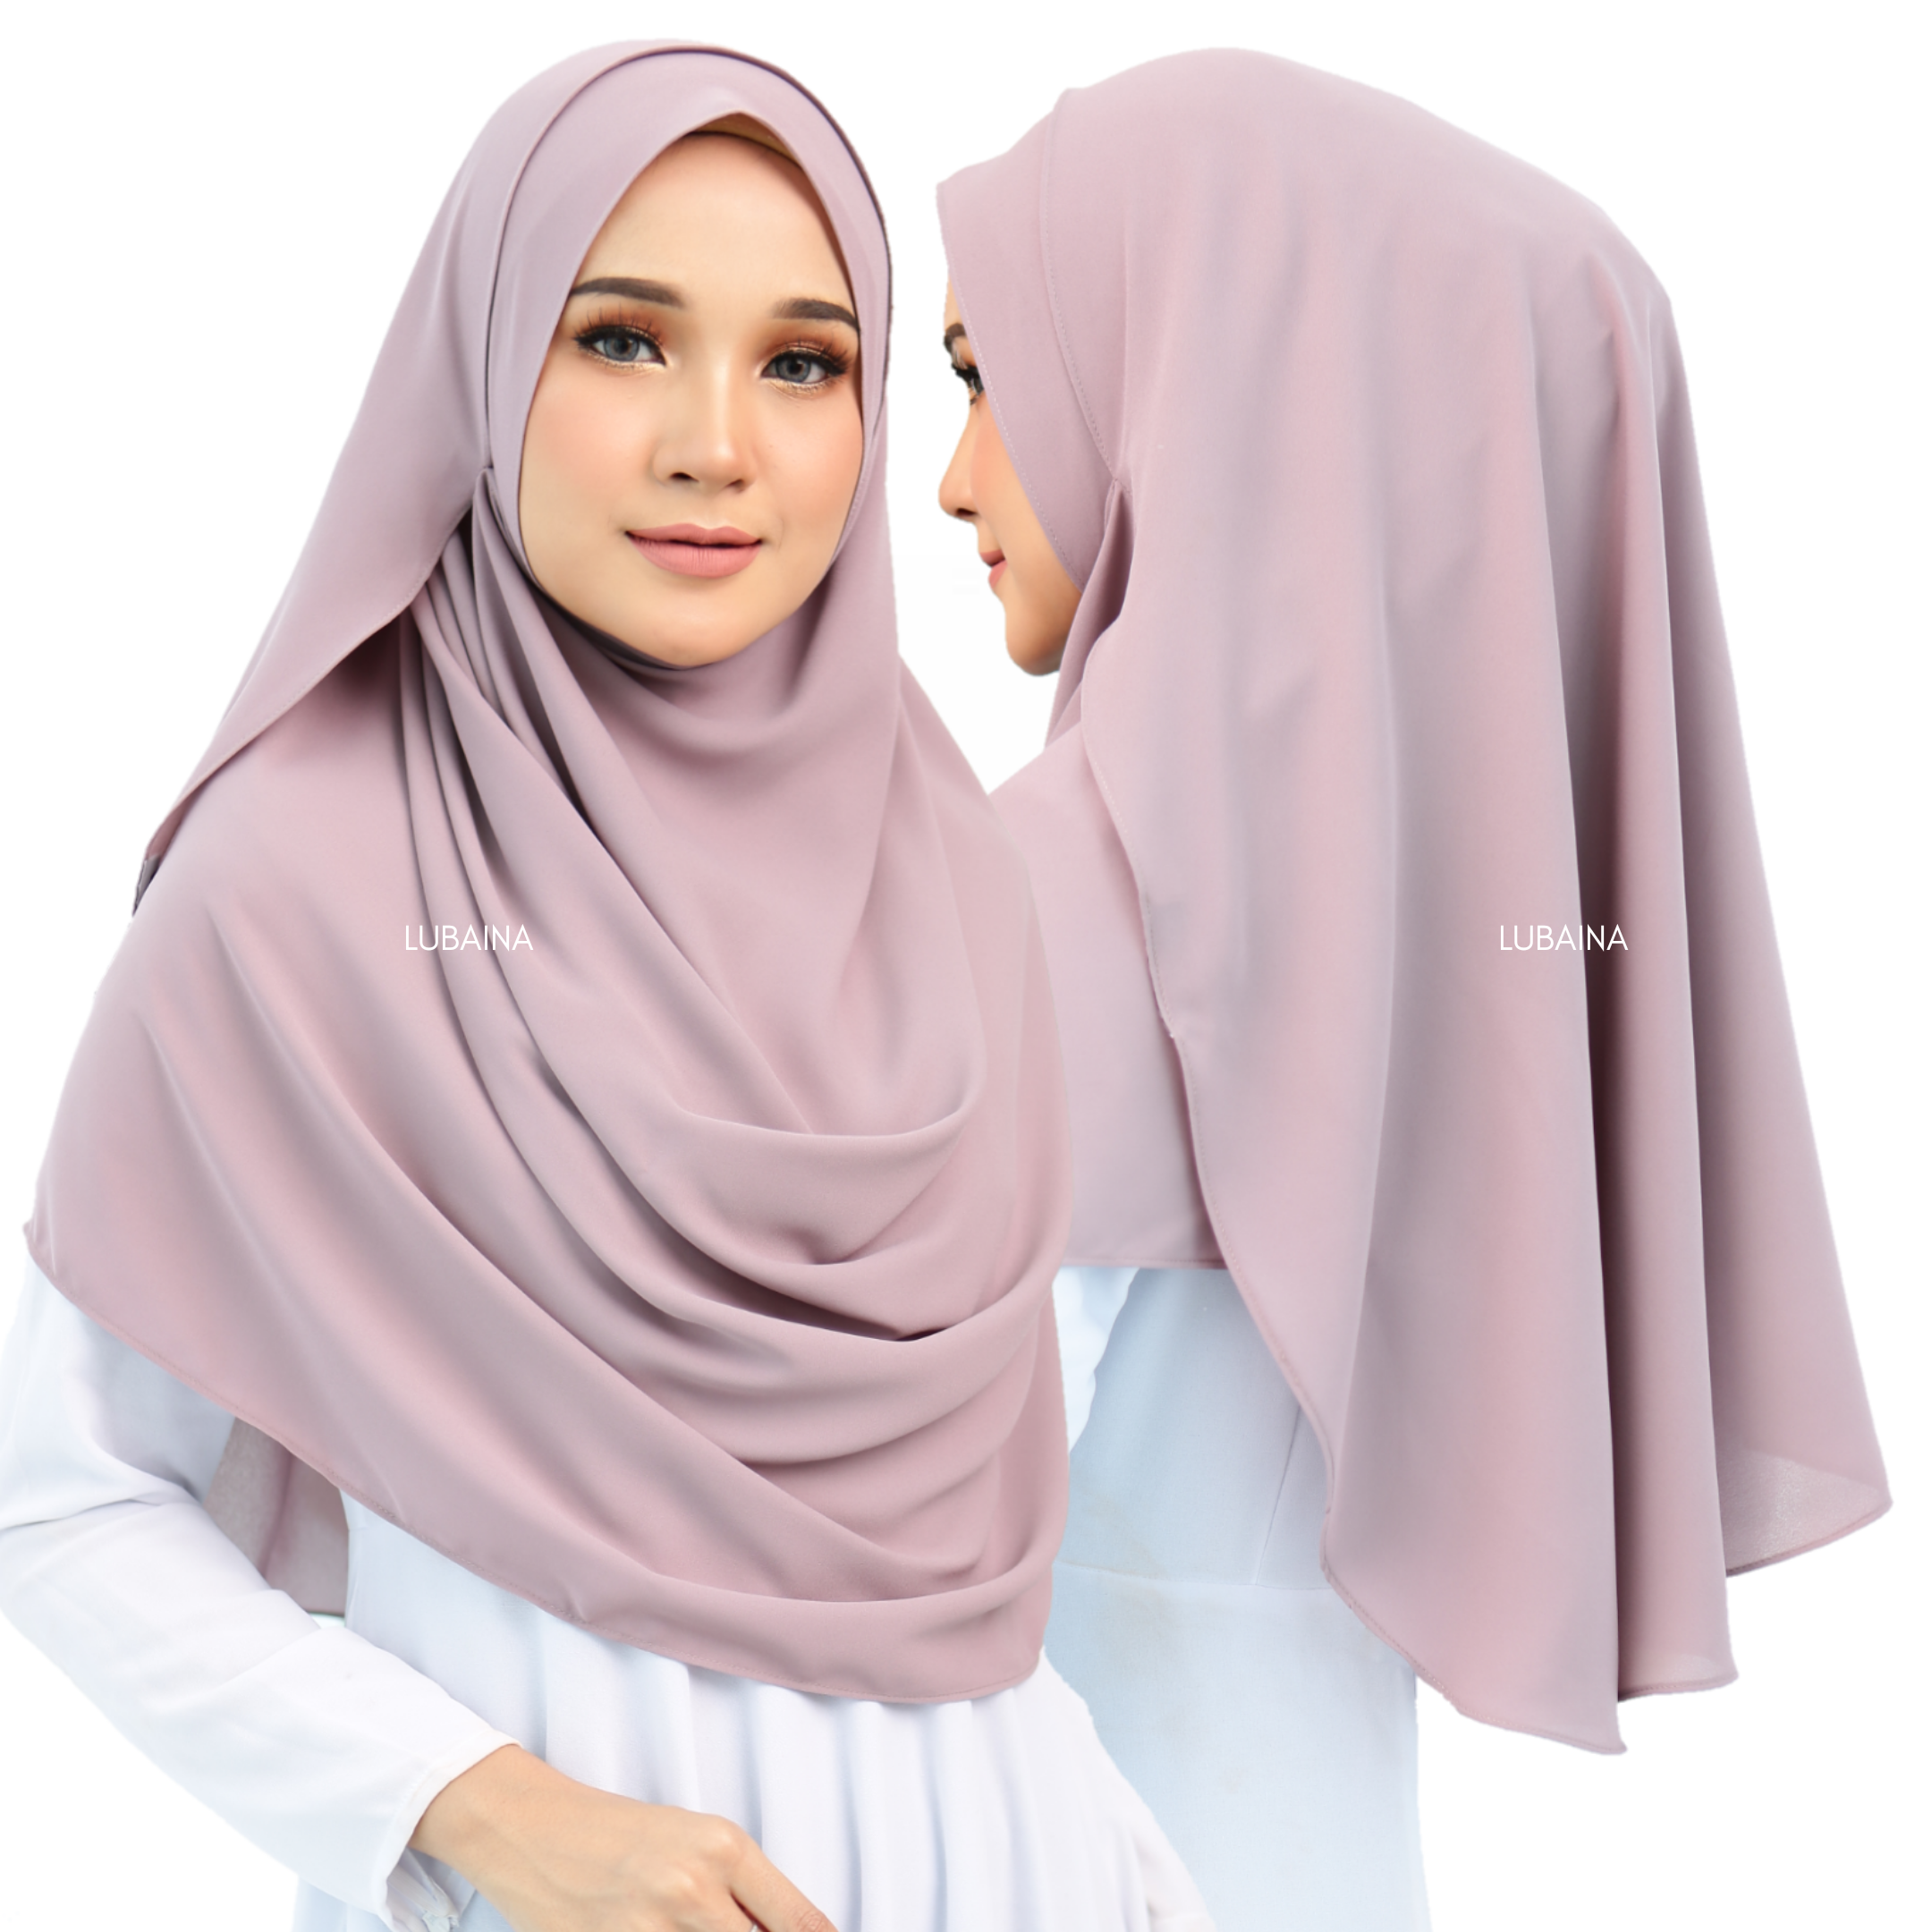 Lubaina-Double-Loop-Instant-Shawl (6).png